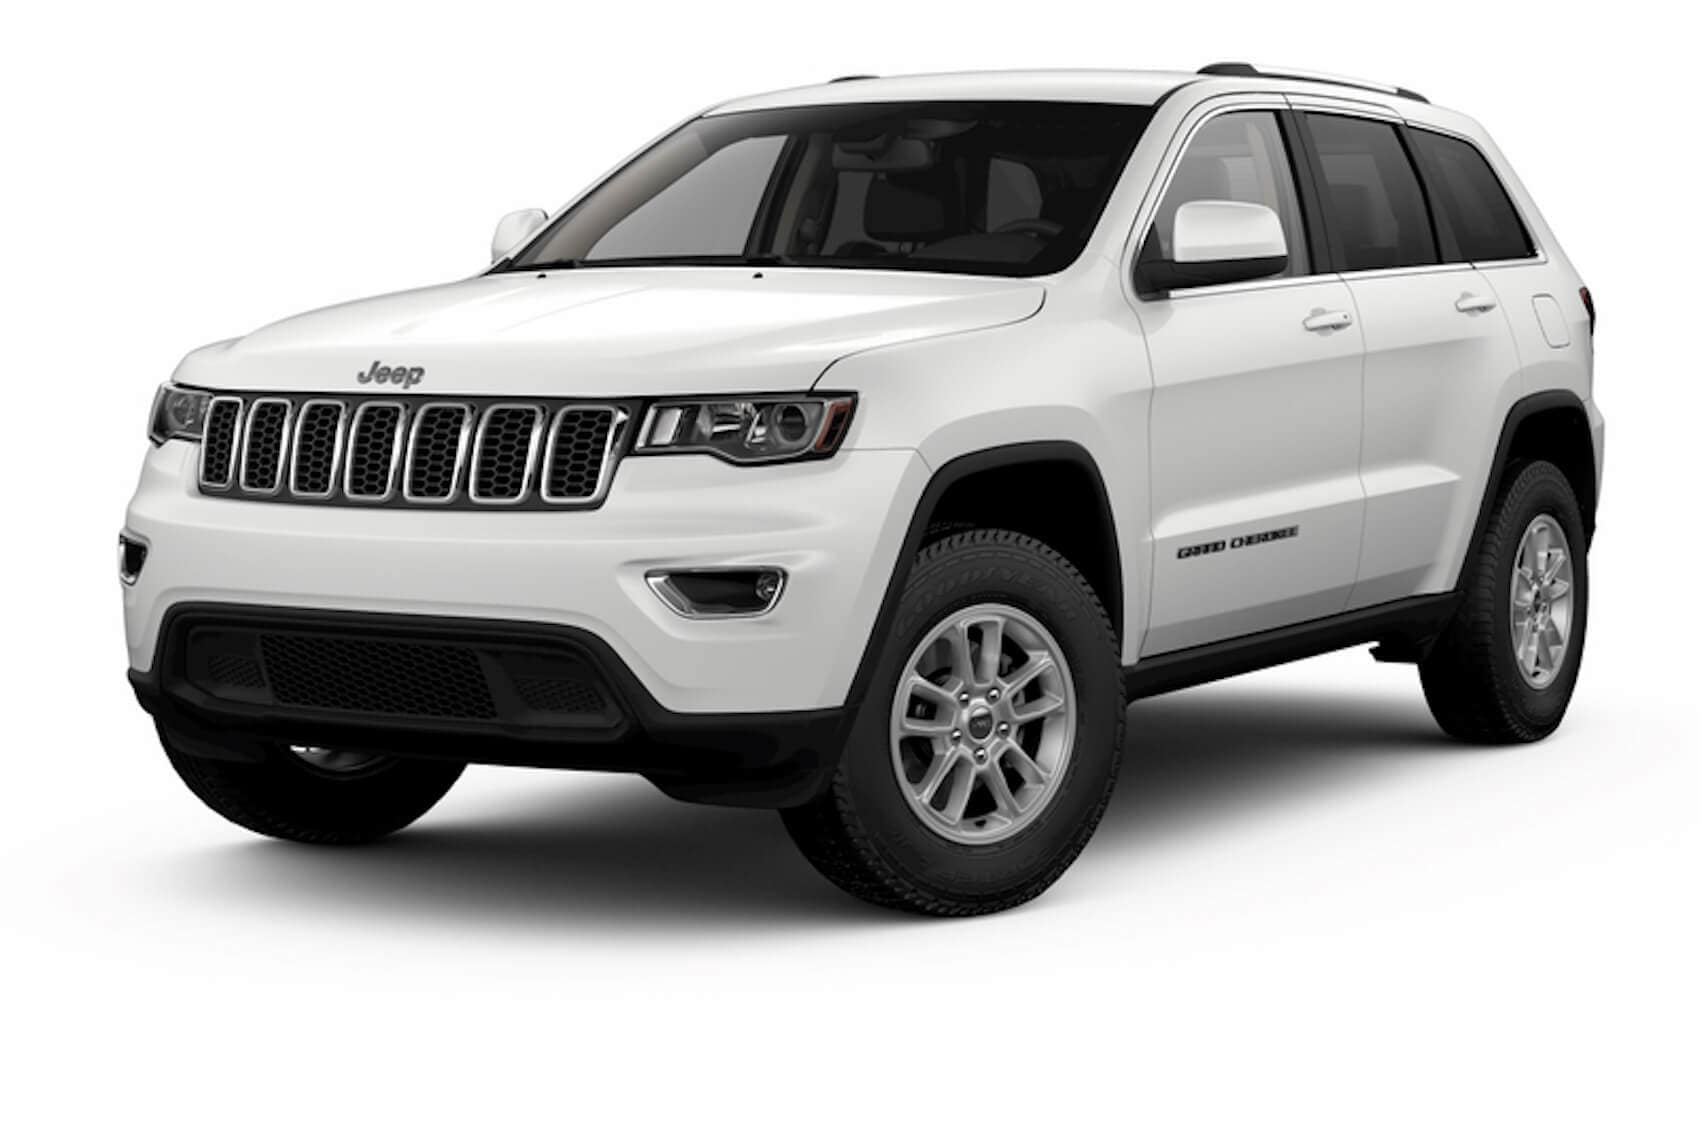 Jeep Grand Cherokee for sale at certified pre-owned dealer Chicago, IL